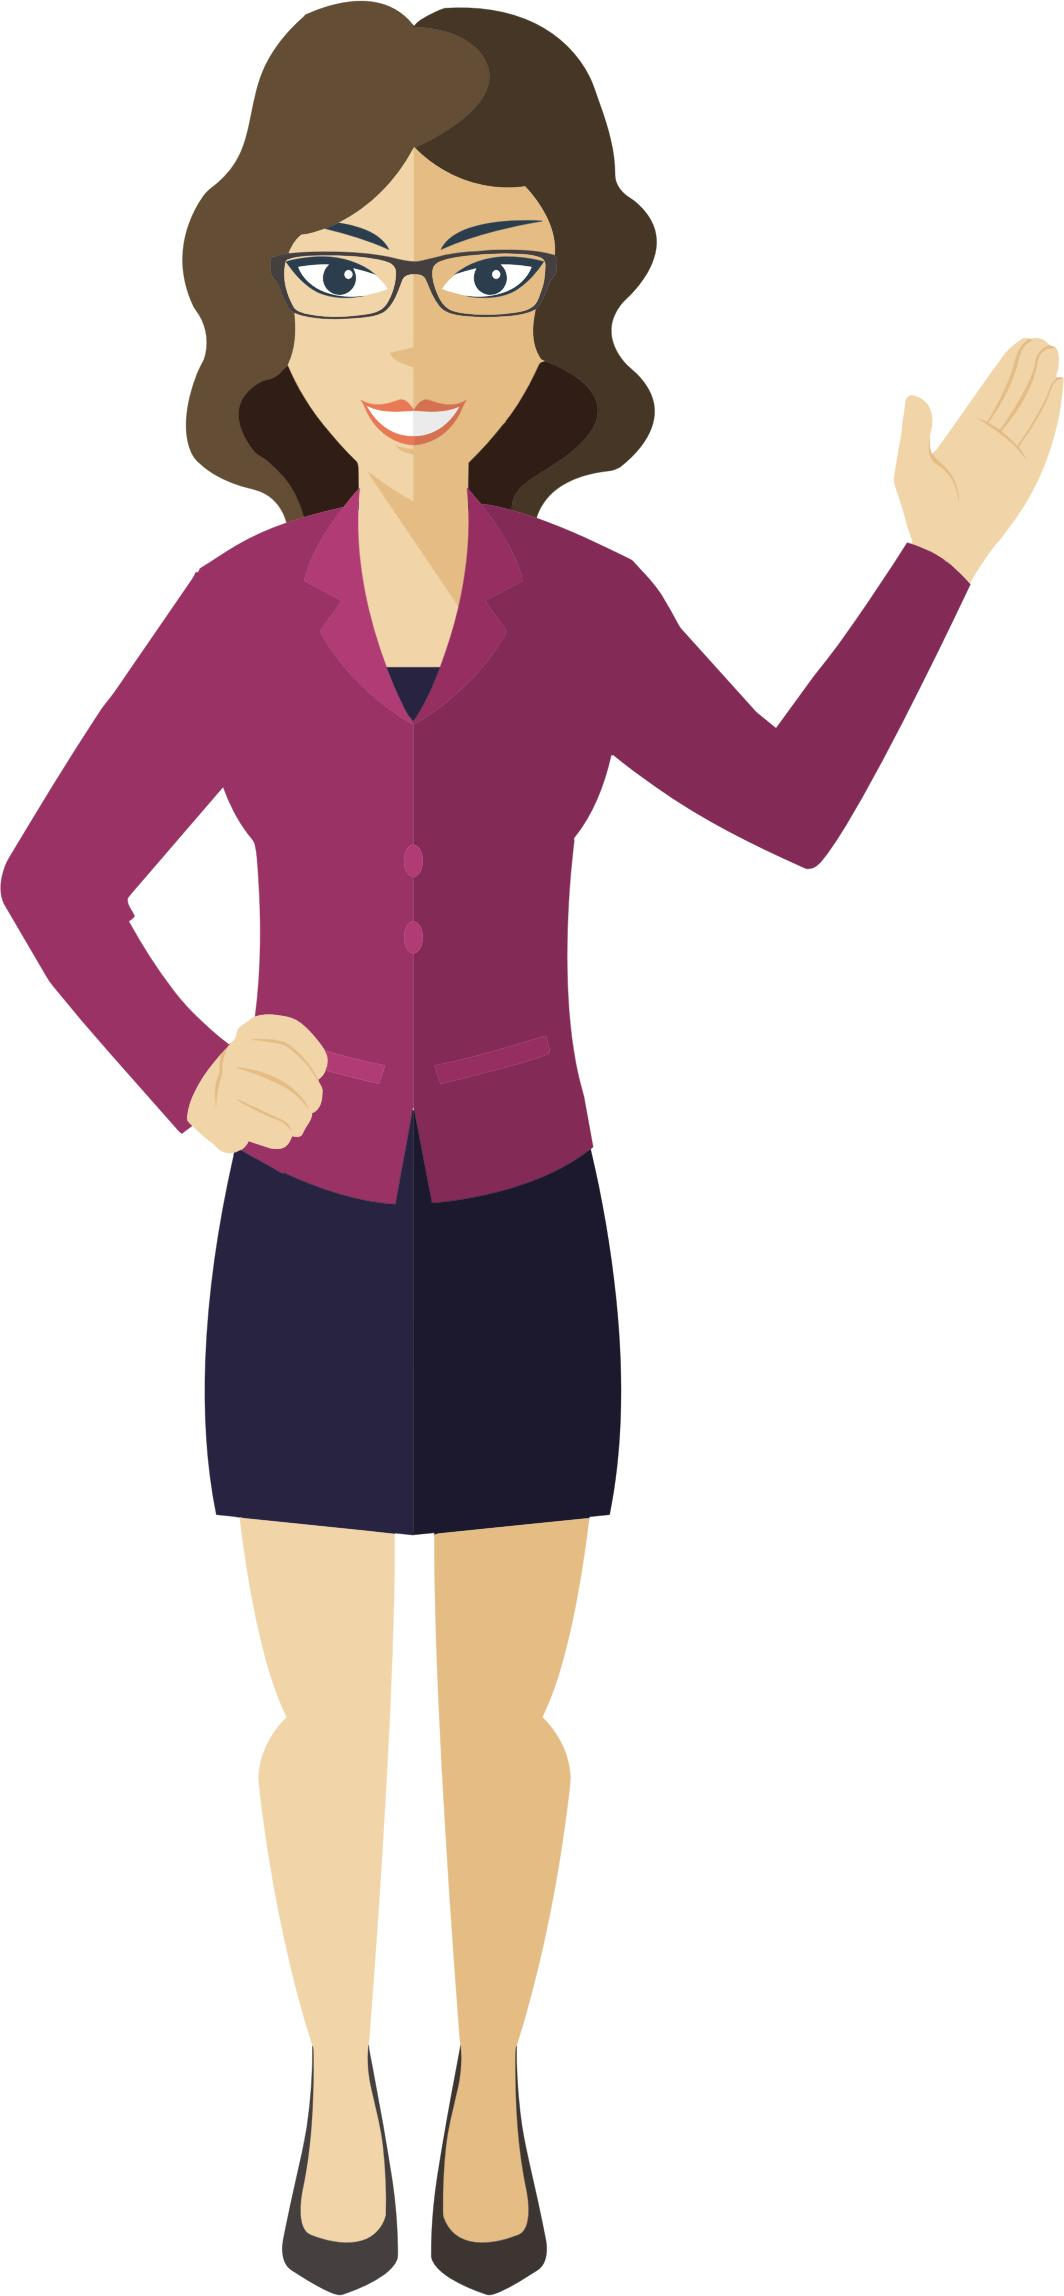 Businesswoman clipart person. Flat shaded business woman